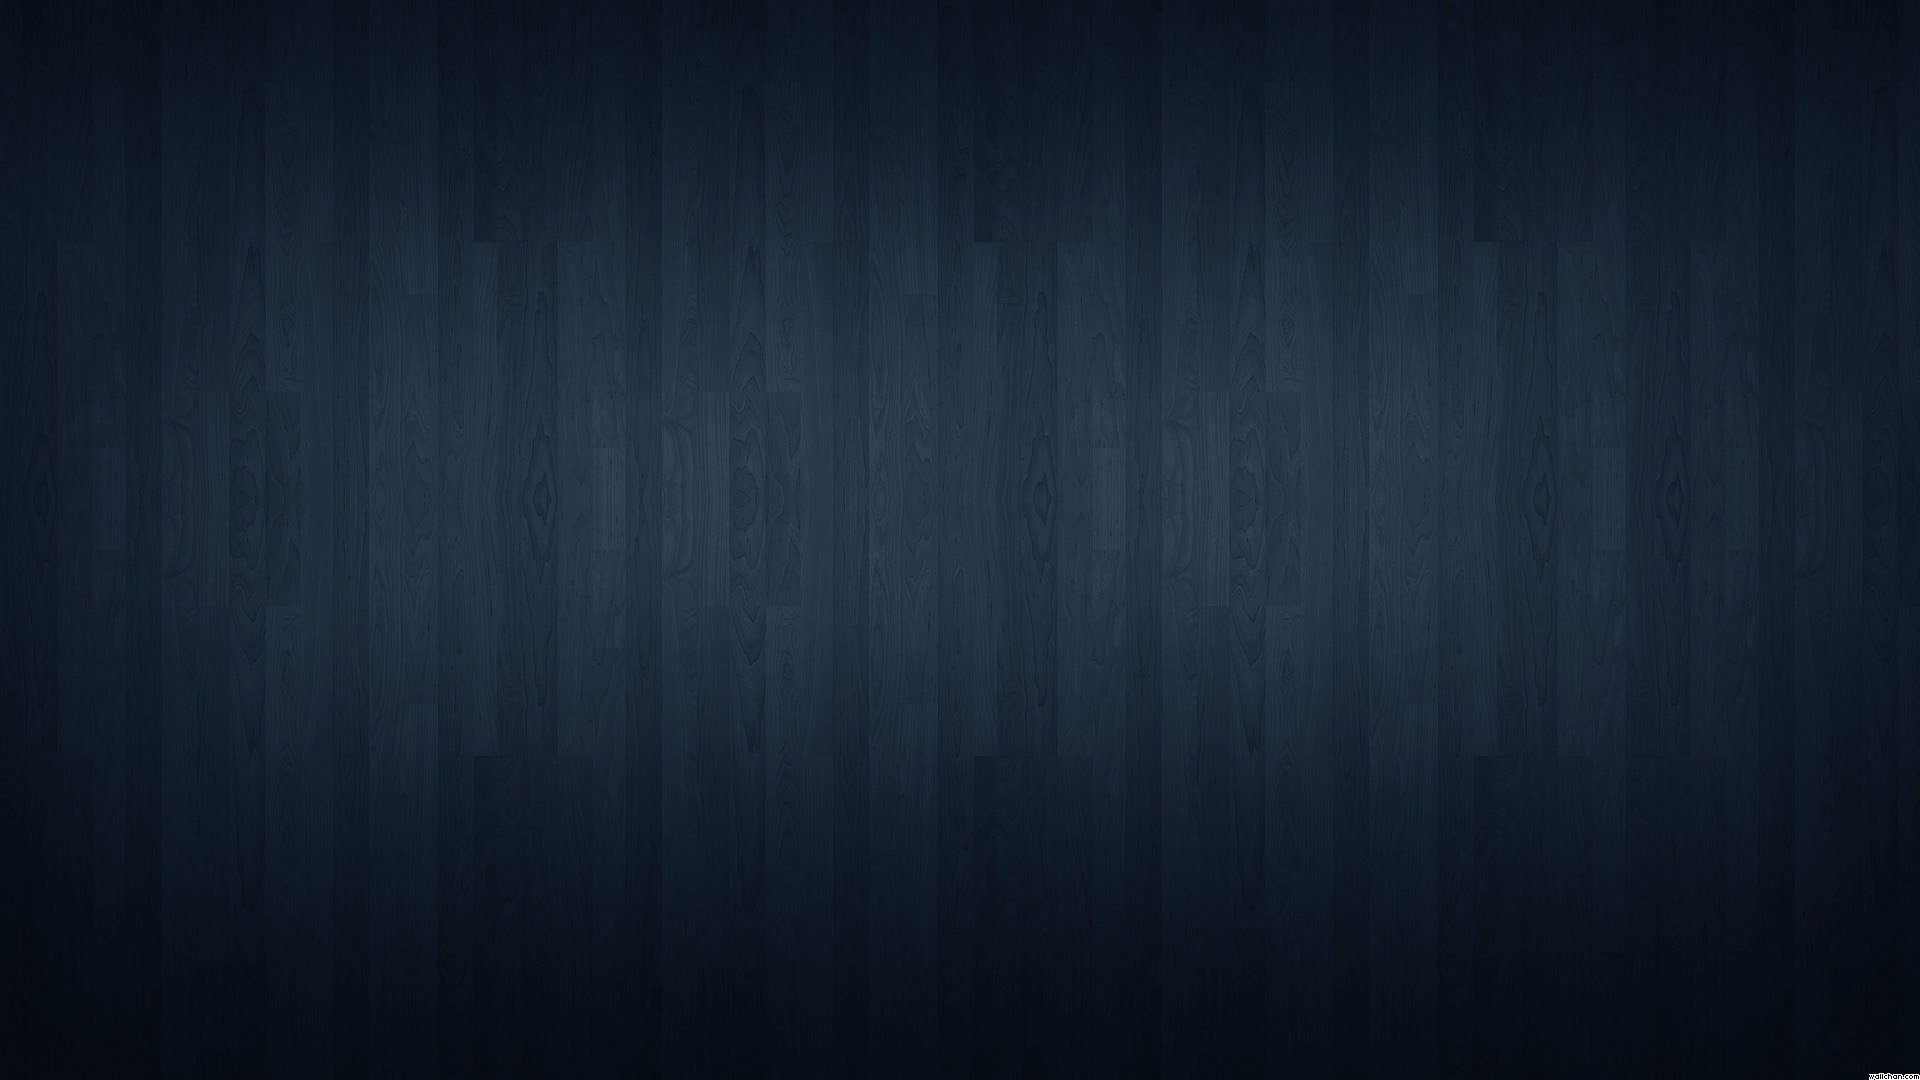 dark wood floor background. dark blue wood floor background wallpaper